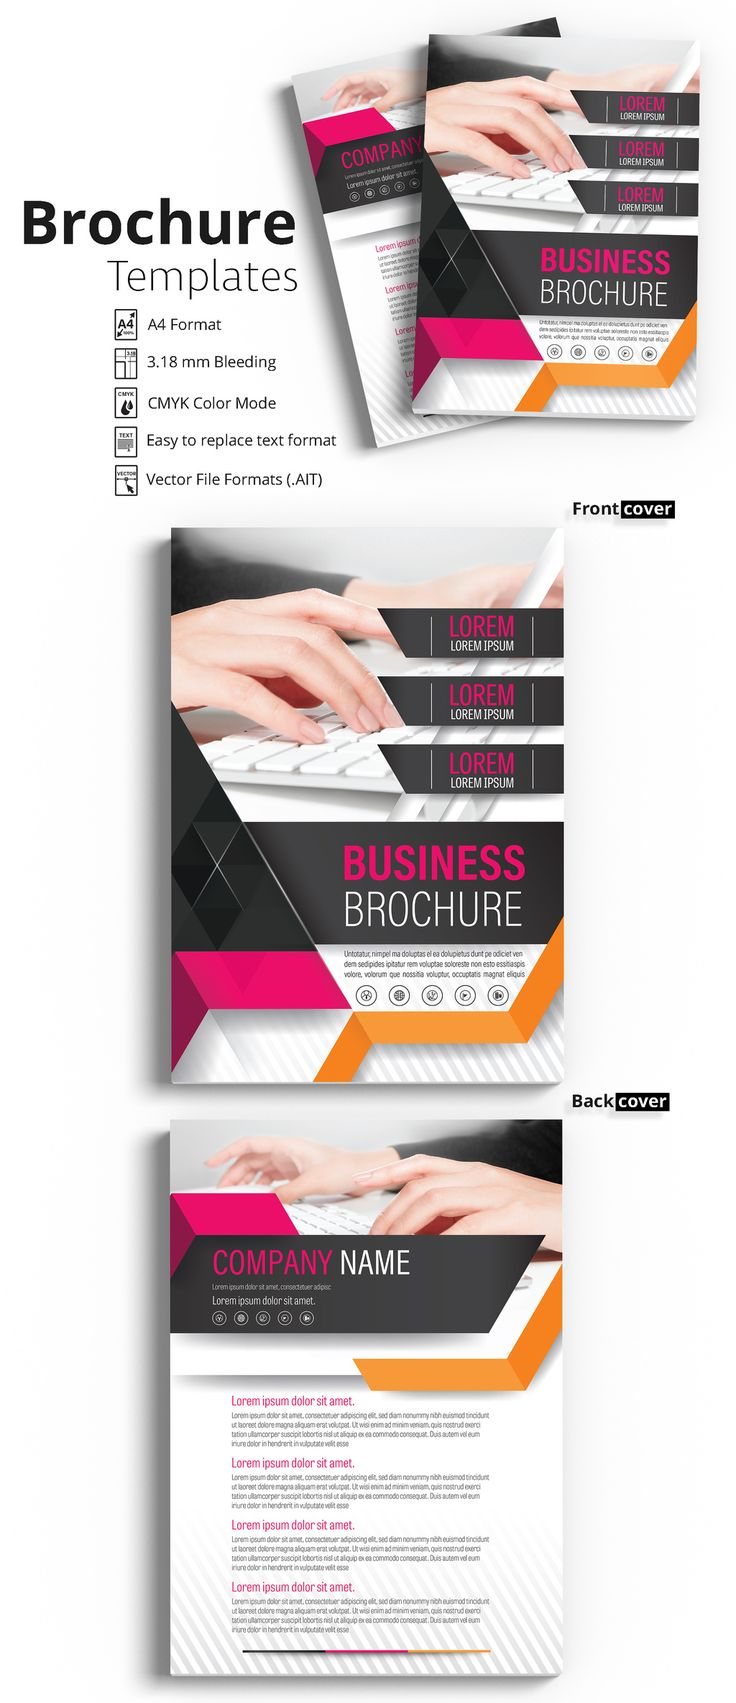 Brochure Cover Layout with Pink and Orange Accents - image | Adobe Stock #Brochure #Business #Proposal #Booklet #Flyer #Template #Design #Layout #Cover #Book #Booklet #A4 #Annual #Report| Brochure template | Brochure design template | Flyers | Template | Brochures | Flyer Background | Background design | Business Proposal | Proposal Design | Booklet | Professional | Professional - Proposal - Brochure - Template